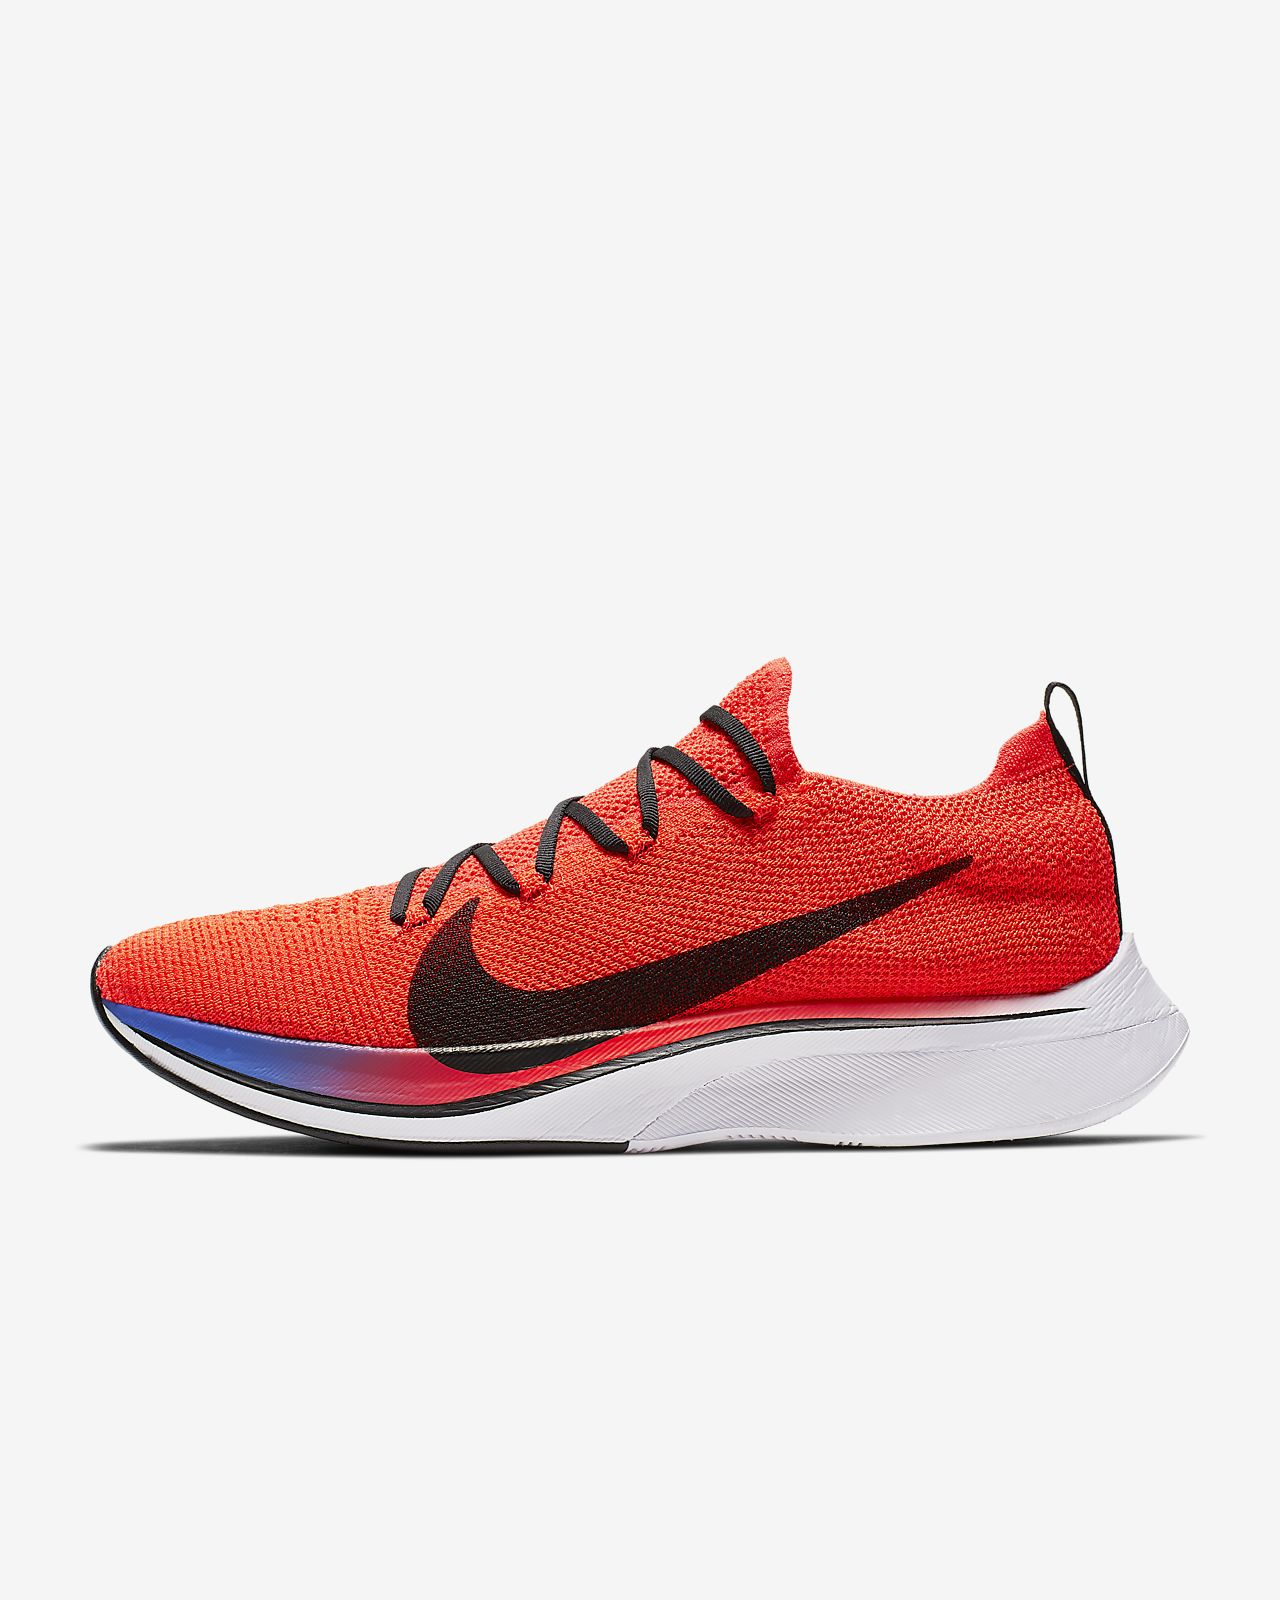 You're Not Fast Enough to Wear Nike Vaporflys | Outside Online